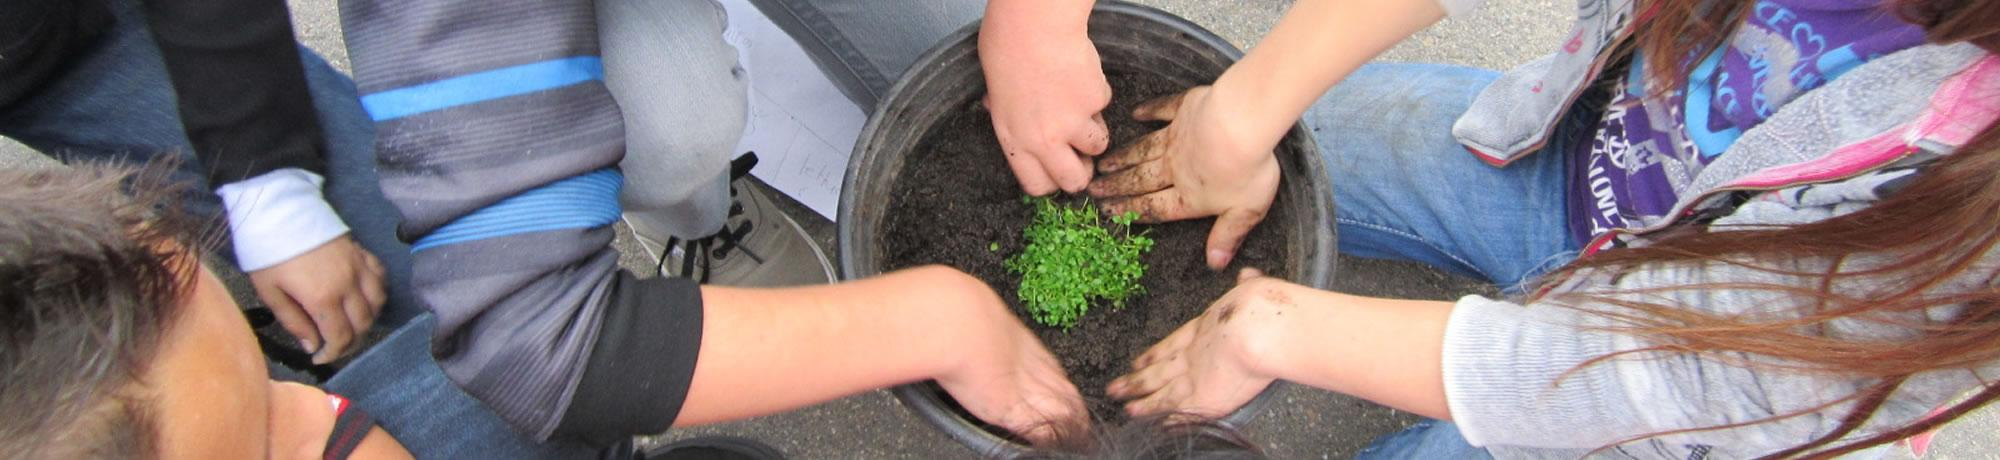 Kids growing a plant.